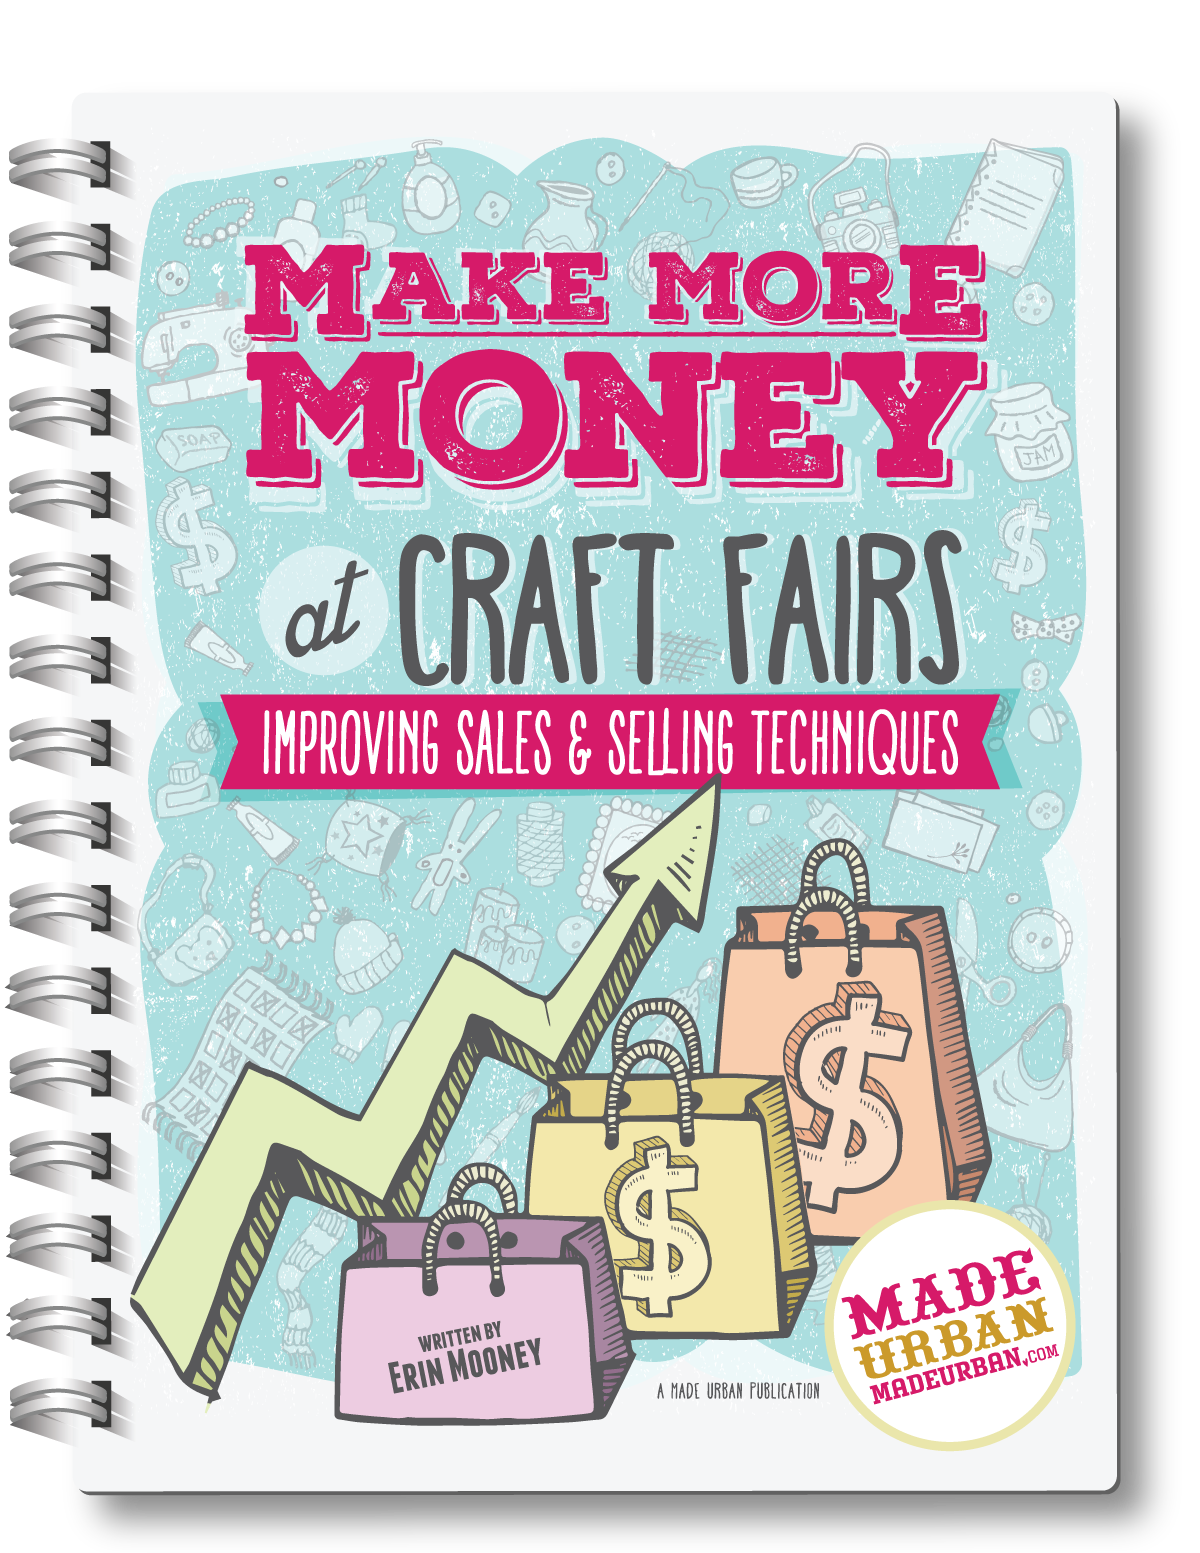 Make More Money at Craft Fairs - Improving Sales & Selling Techniques ebook